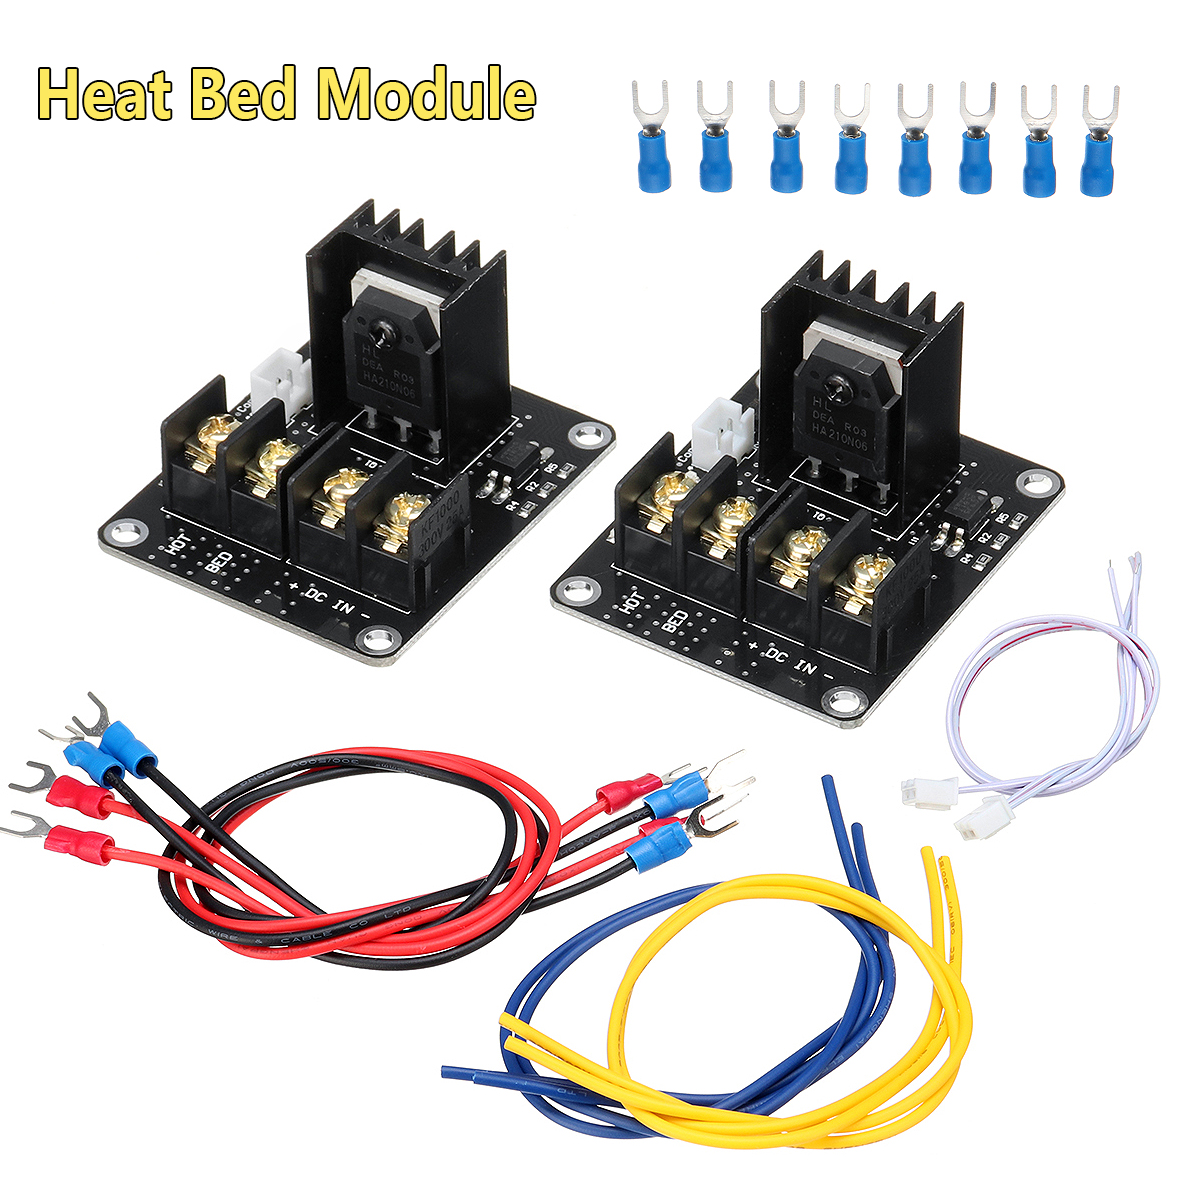 25A MOSFET High Power Heated Bed Expansion Power Module Kit MOS Tube for 3D Printer Parts Accessories Mainboard Pipe Set expansion module elc md204l text panel